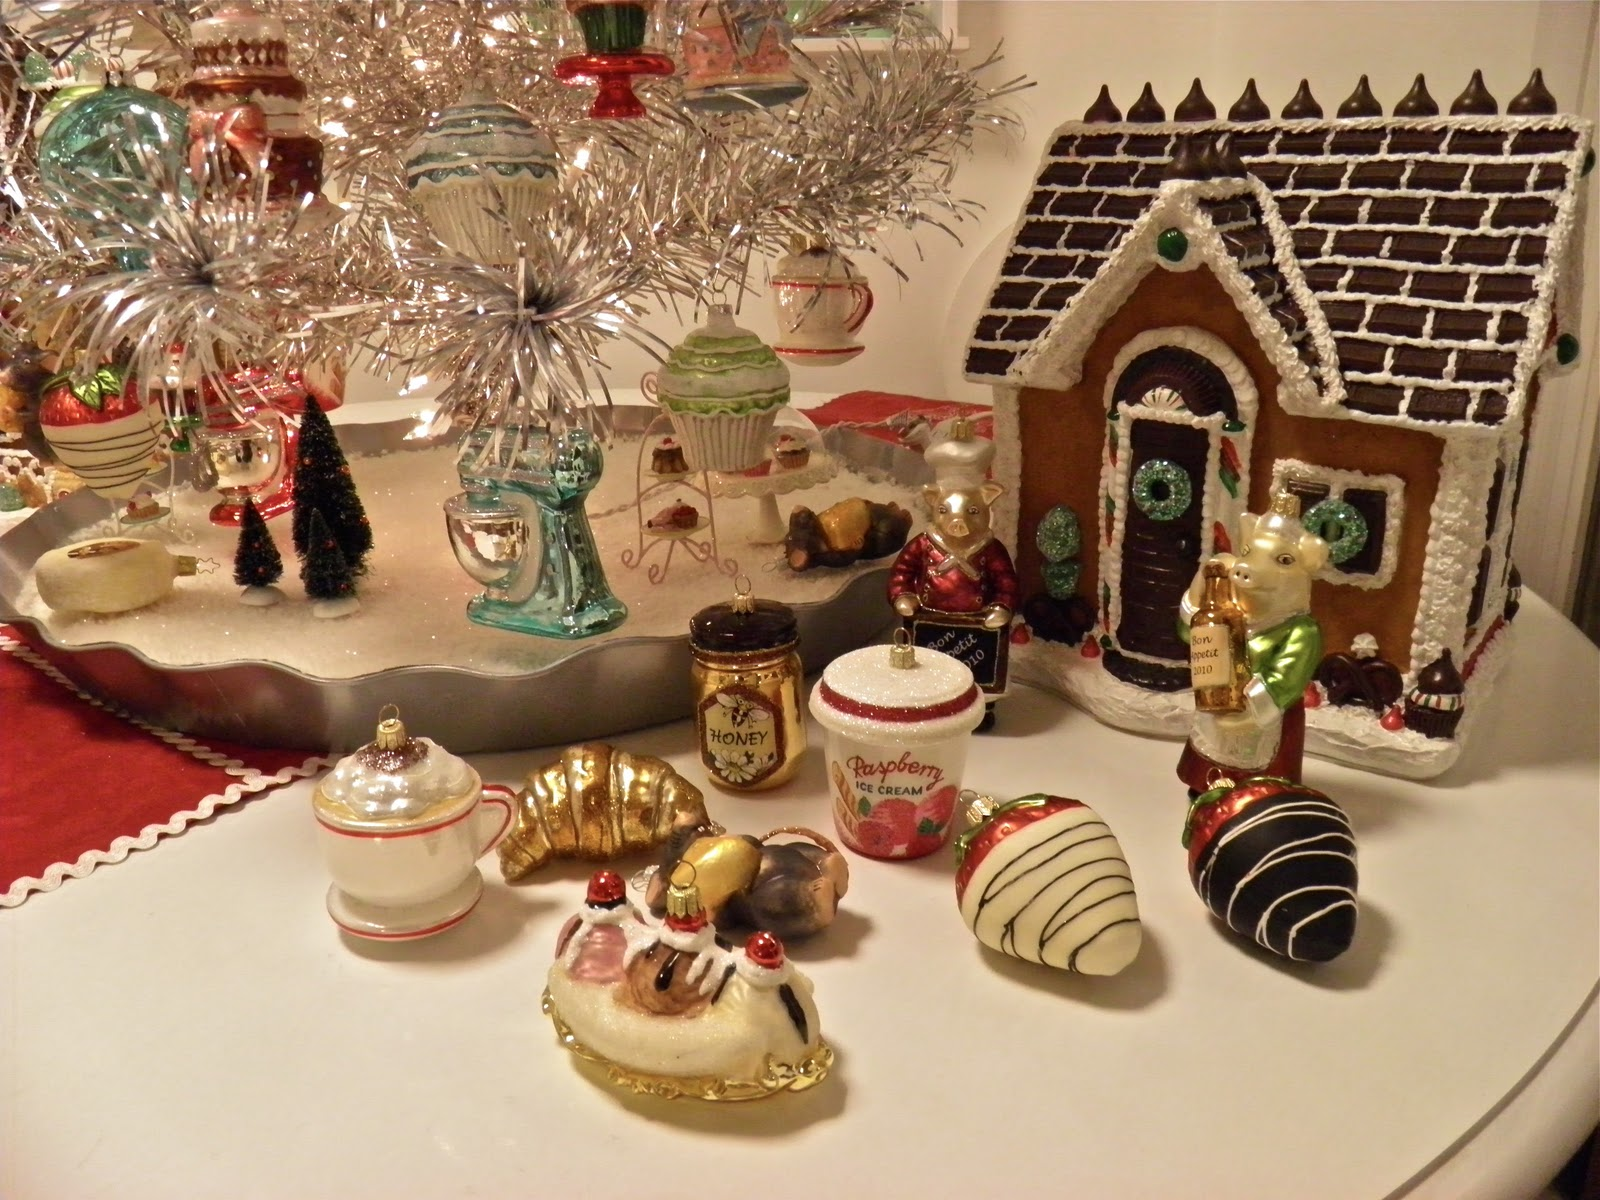 Pottery barn christmas ornaments - Tuesday November 29 2011